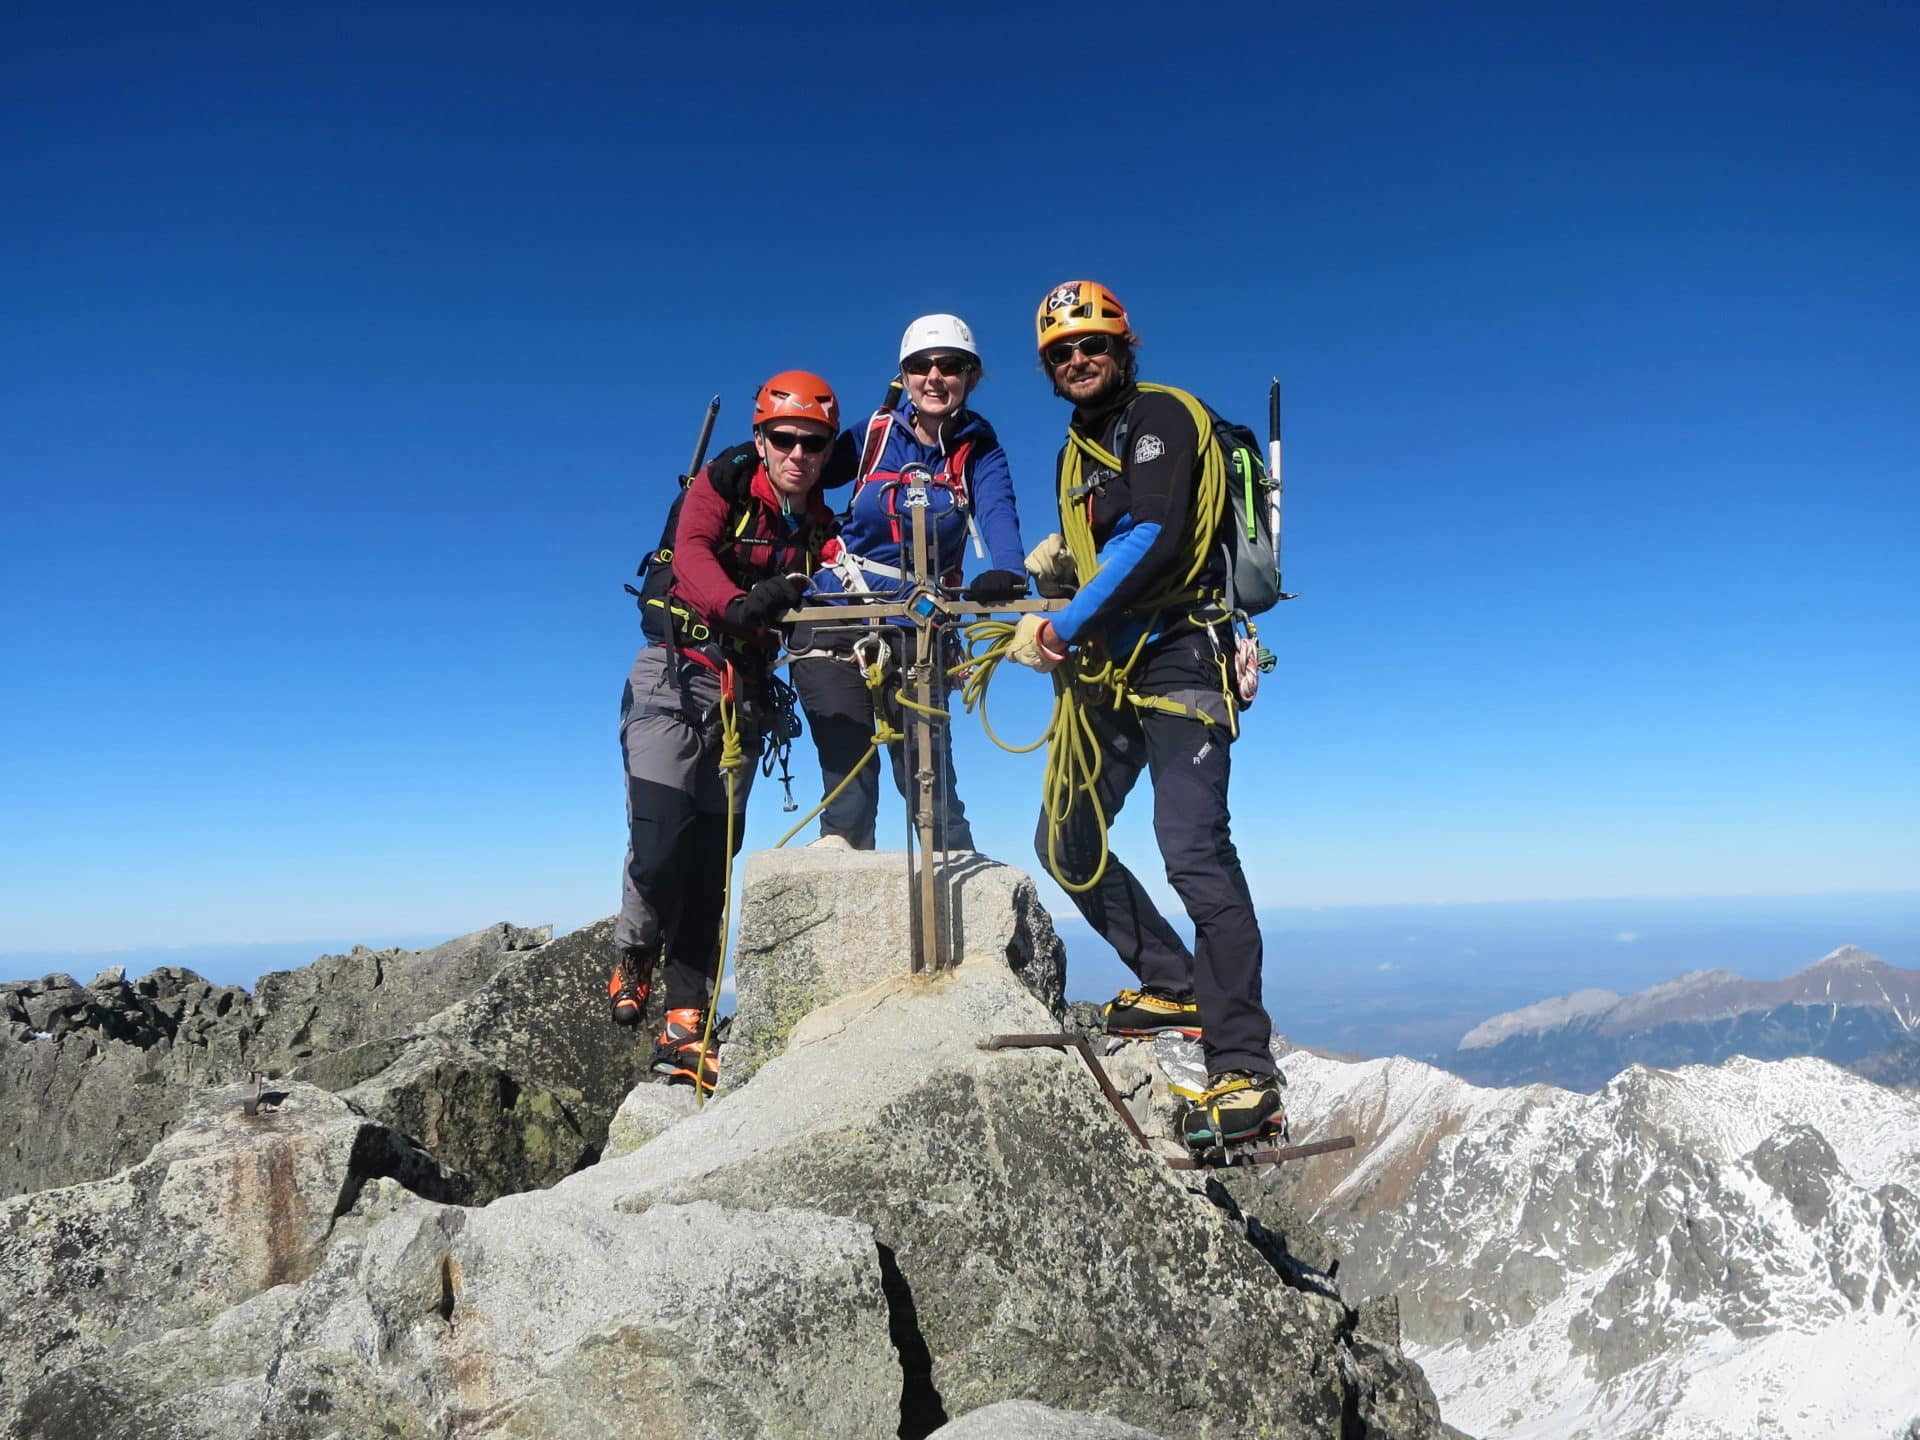 Climbing Gerlach Peak in the High Tatras